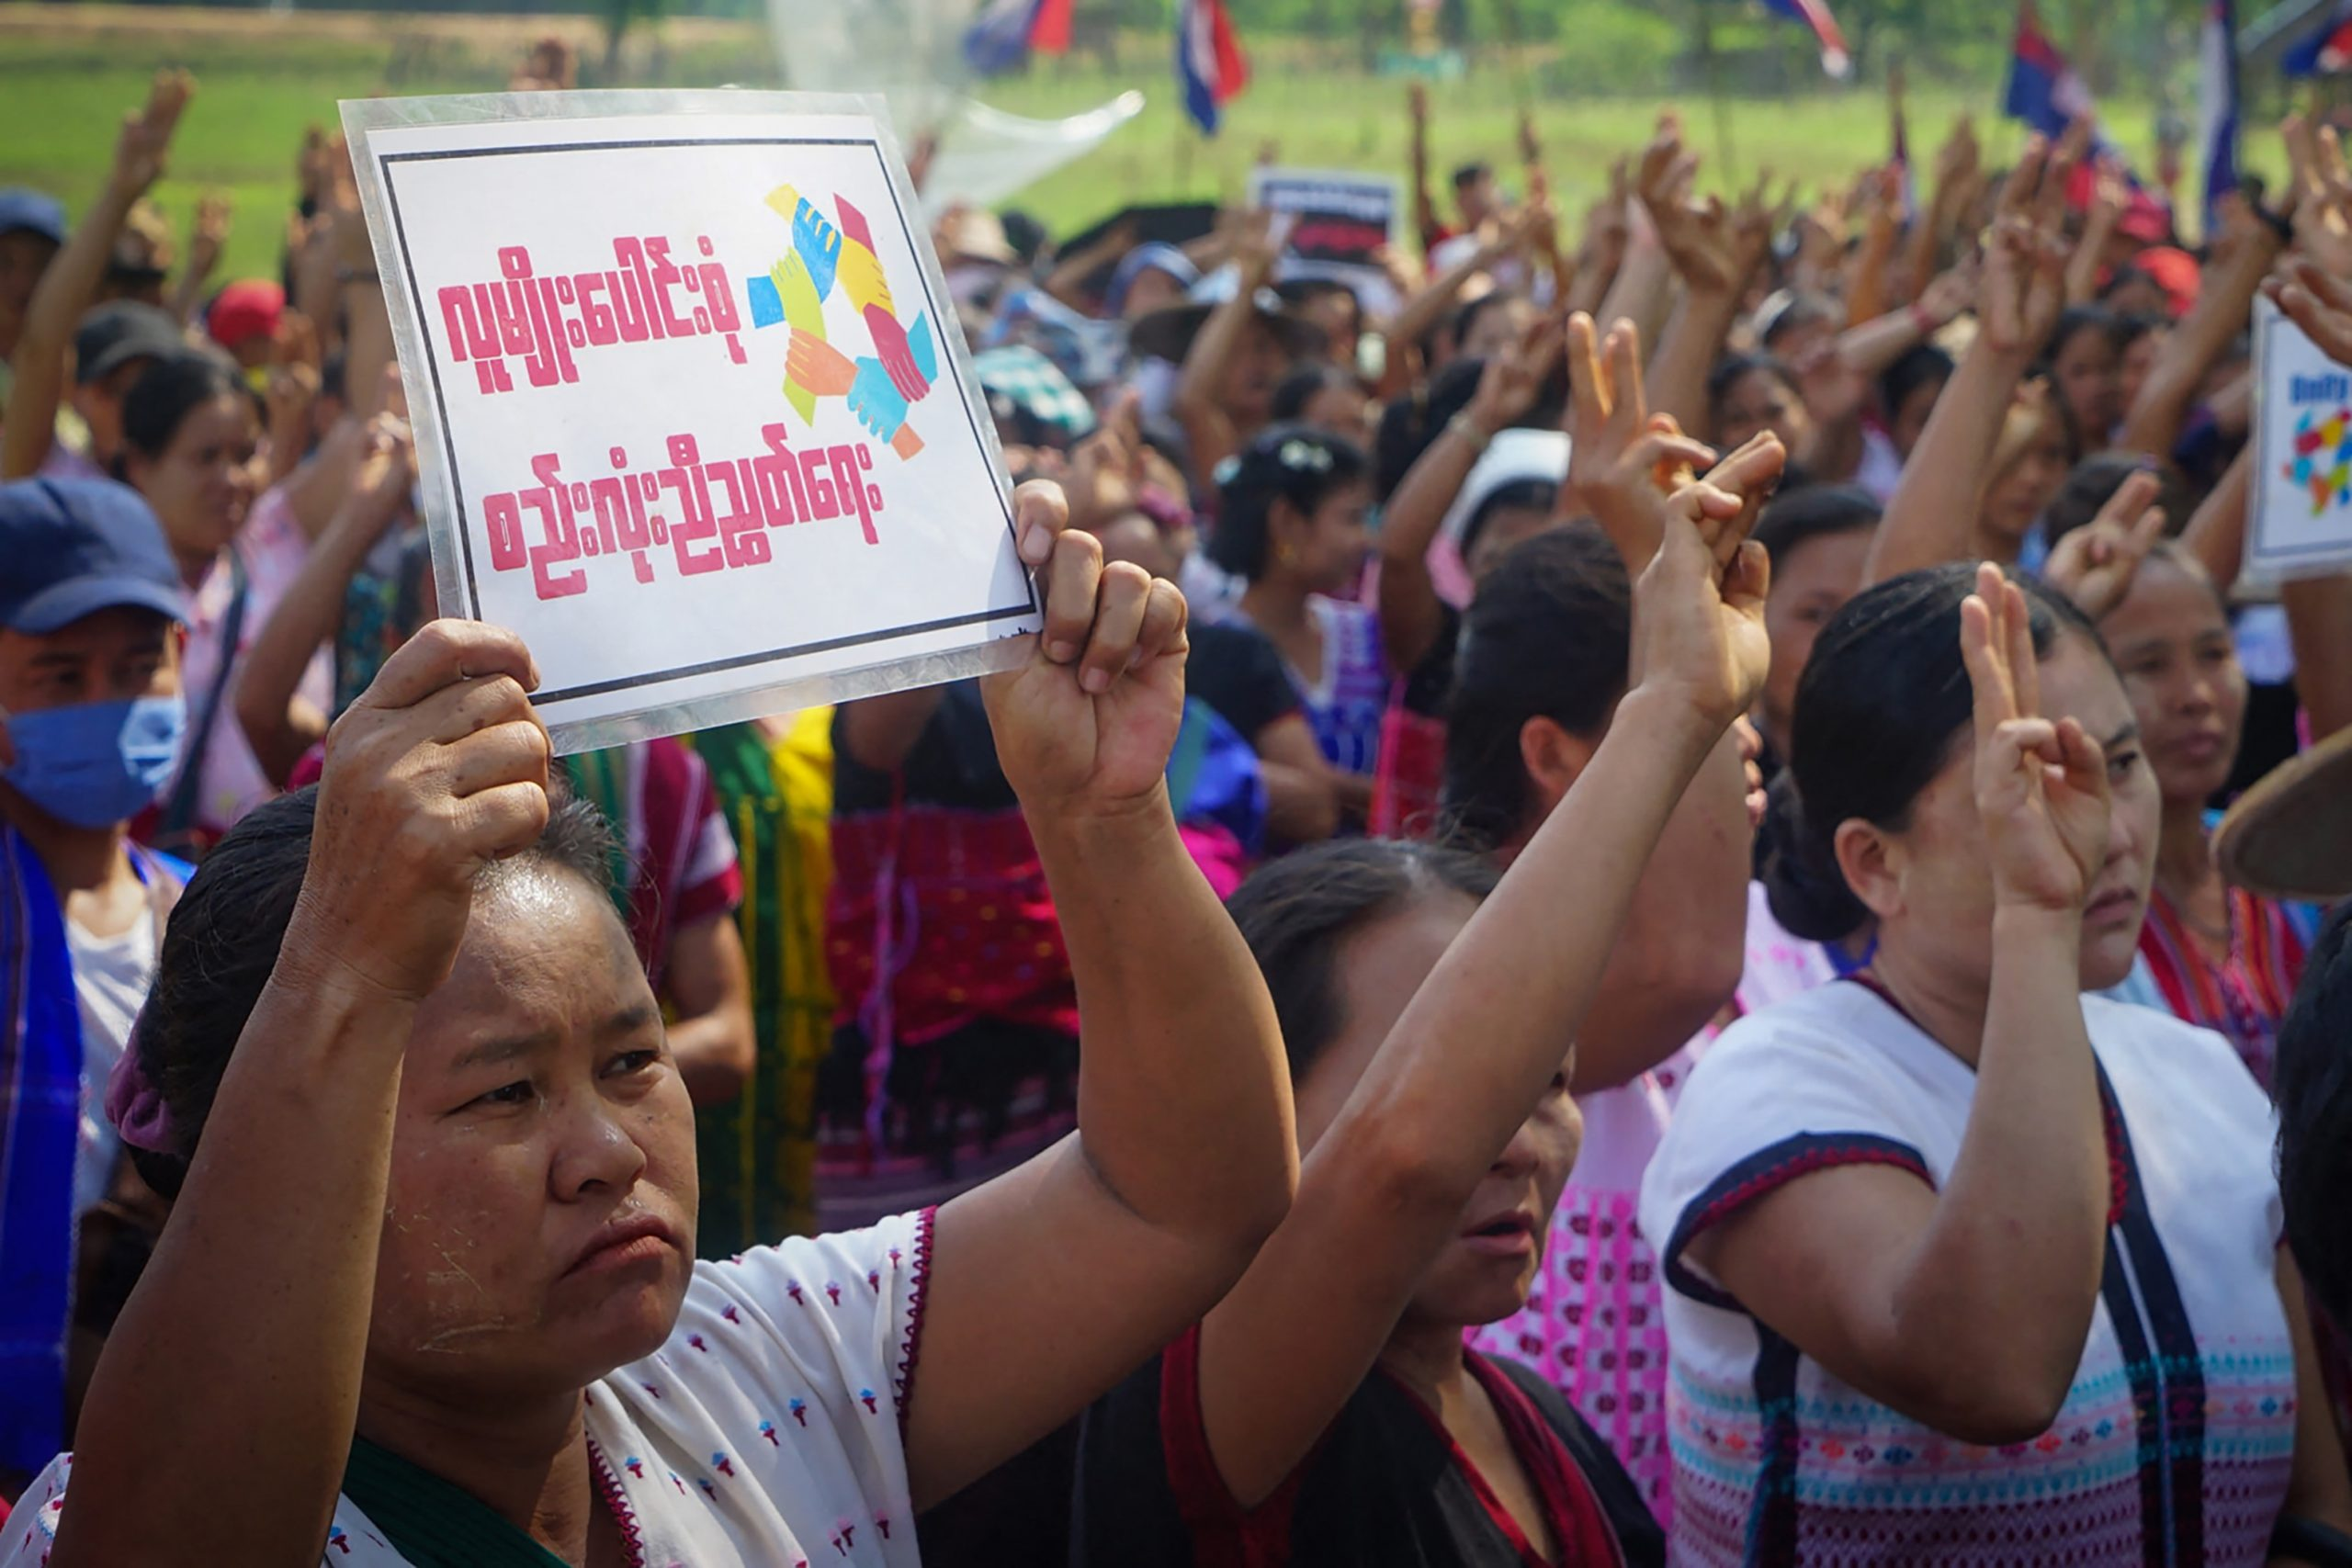 Protesters raise the three-finger salute during a demonstration against the military coup in an area under the control of the Karen National Union in Kayin State on April 22. (AFP / KNU DOOPLAYA DISTRICT)